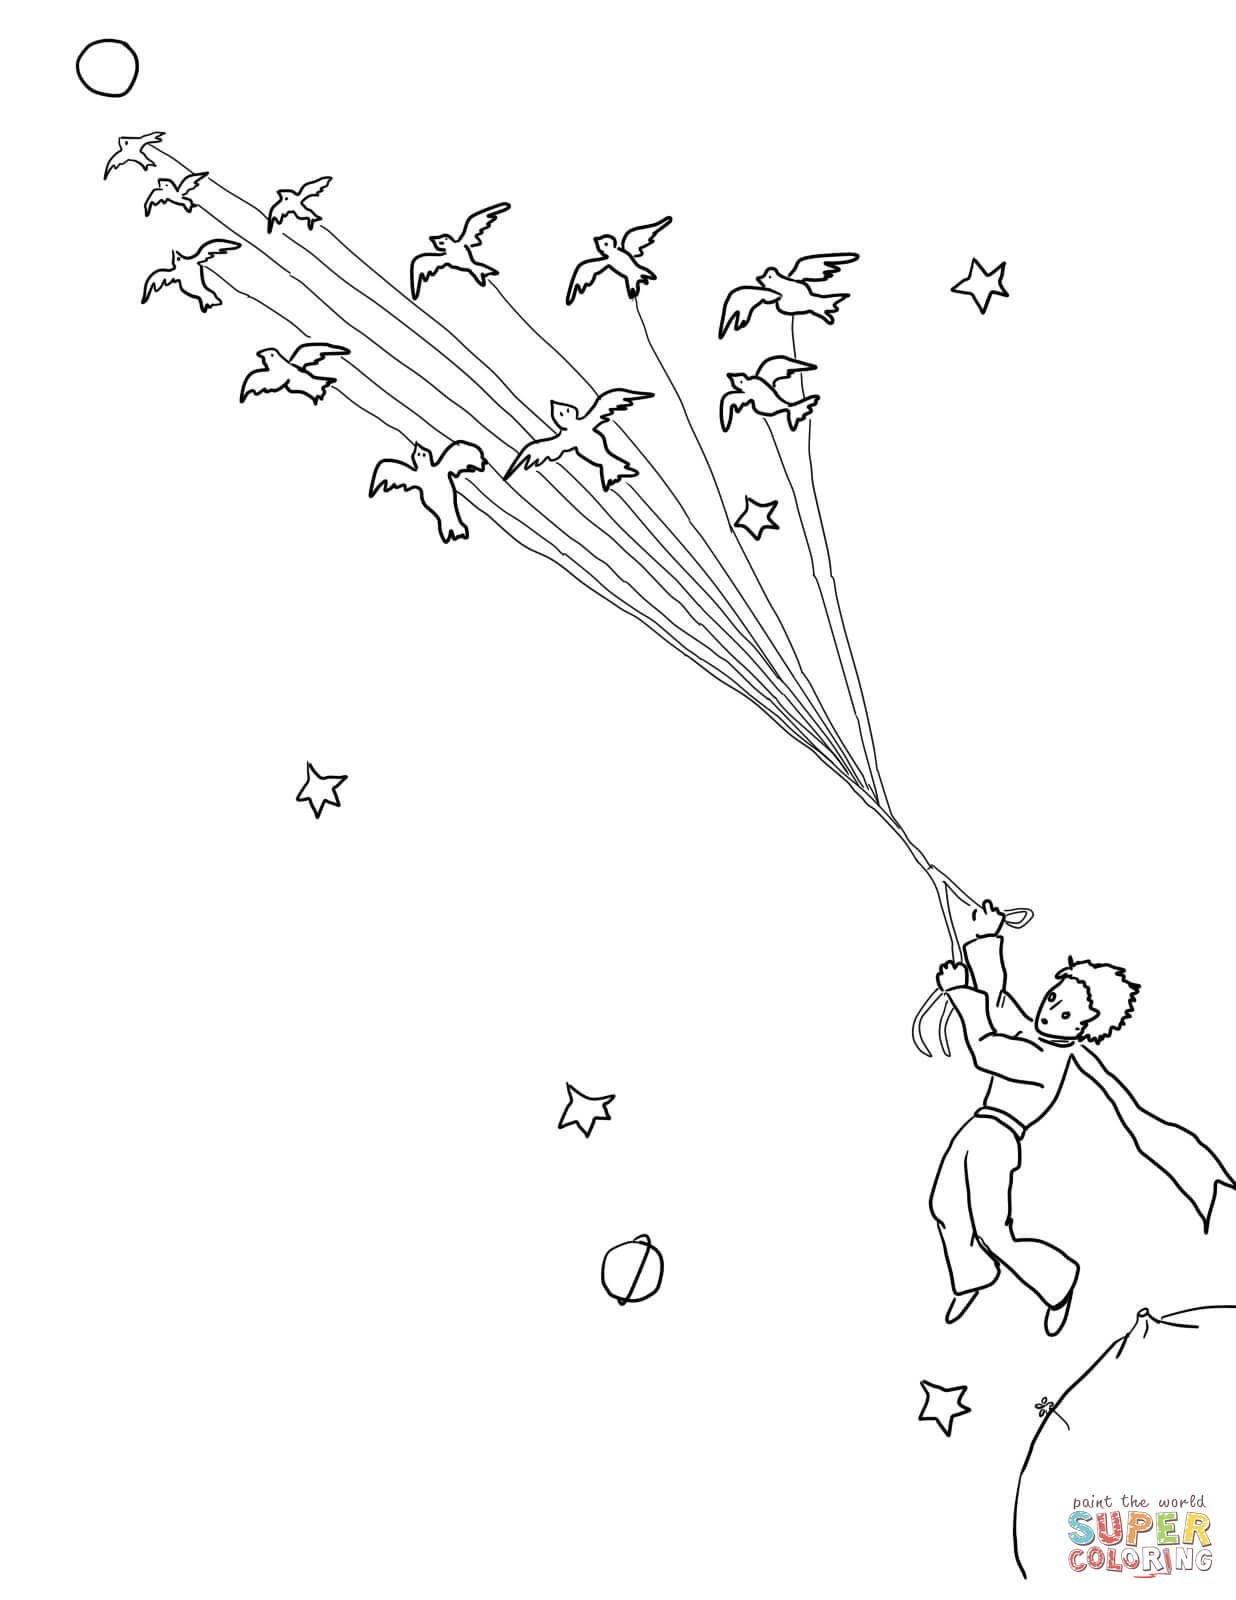 bird migration coloring pages - photo#21